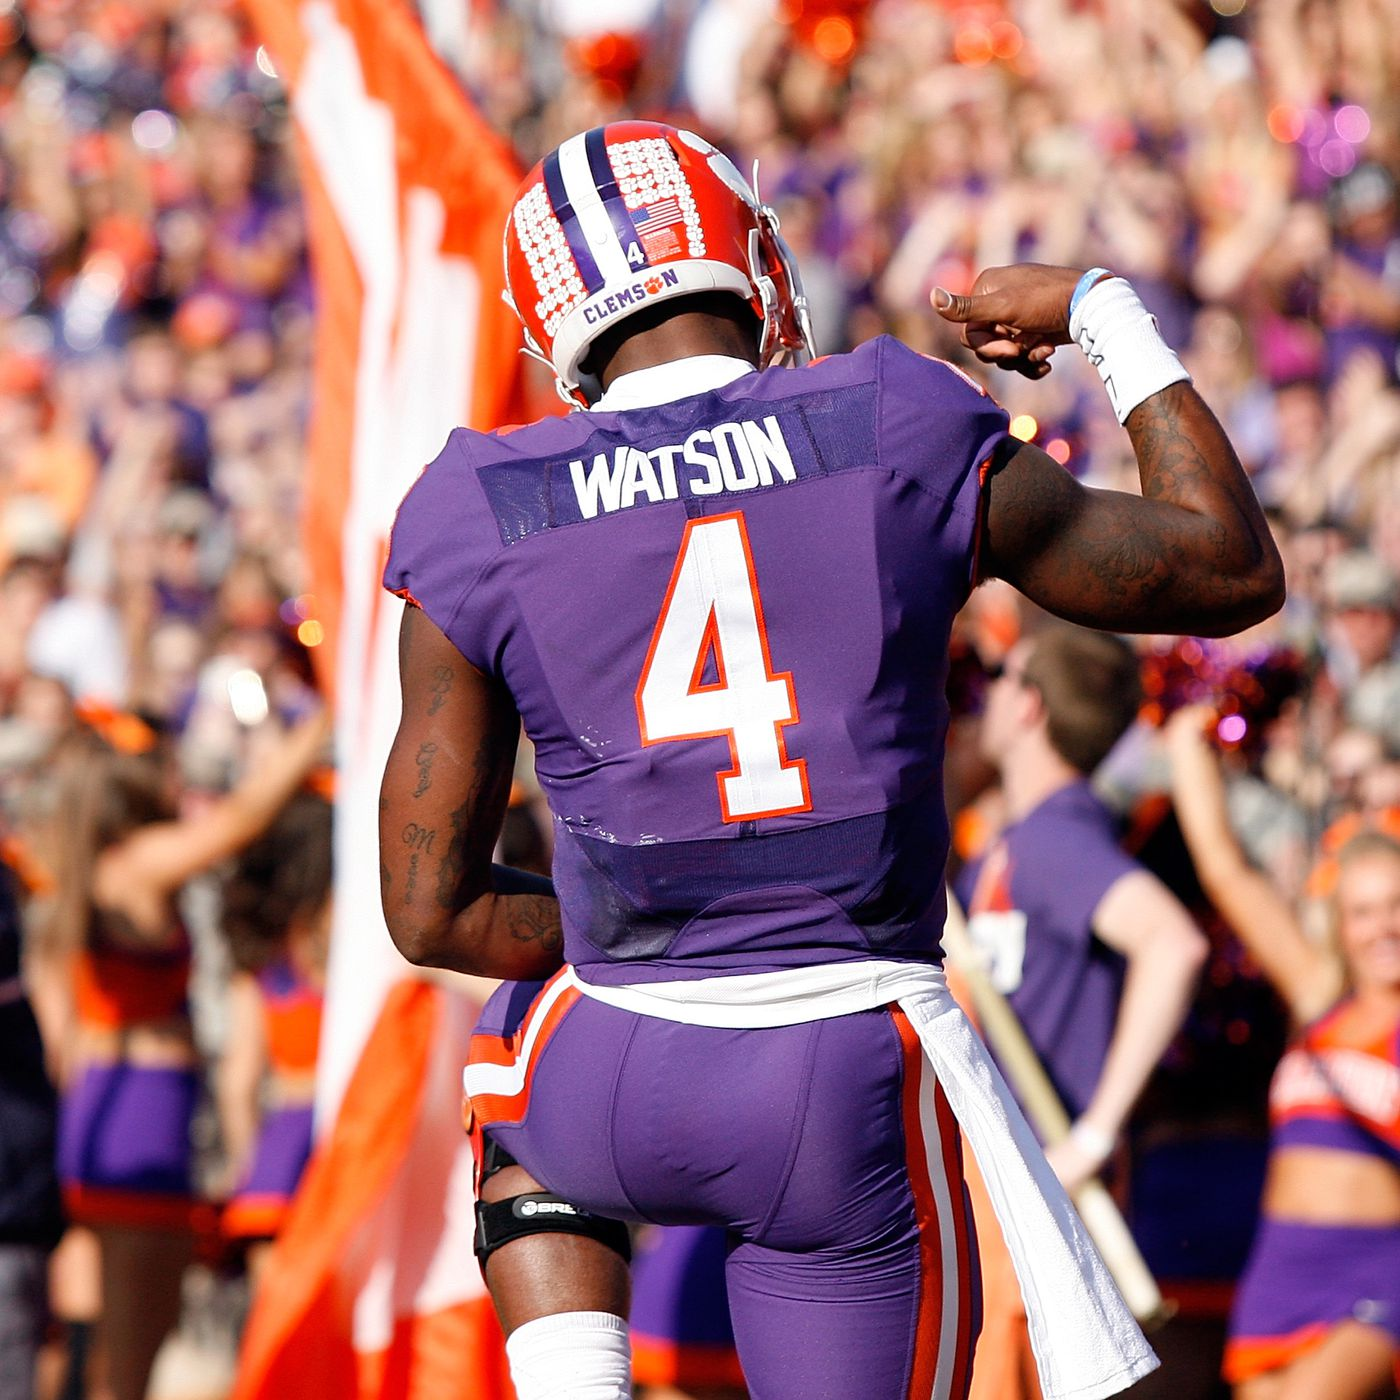 separation shoes 527b9 a04b6 Clemson rolls to a blowout victory over Syracuse and Deshaun ...